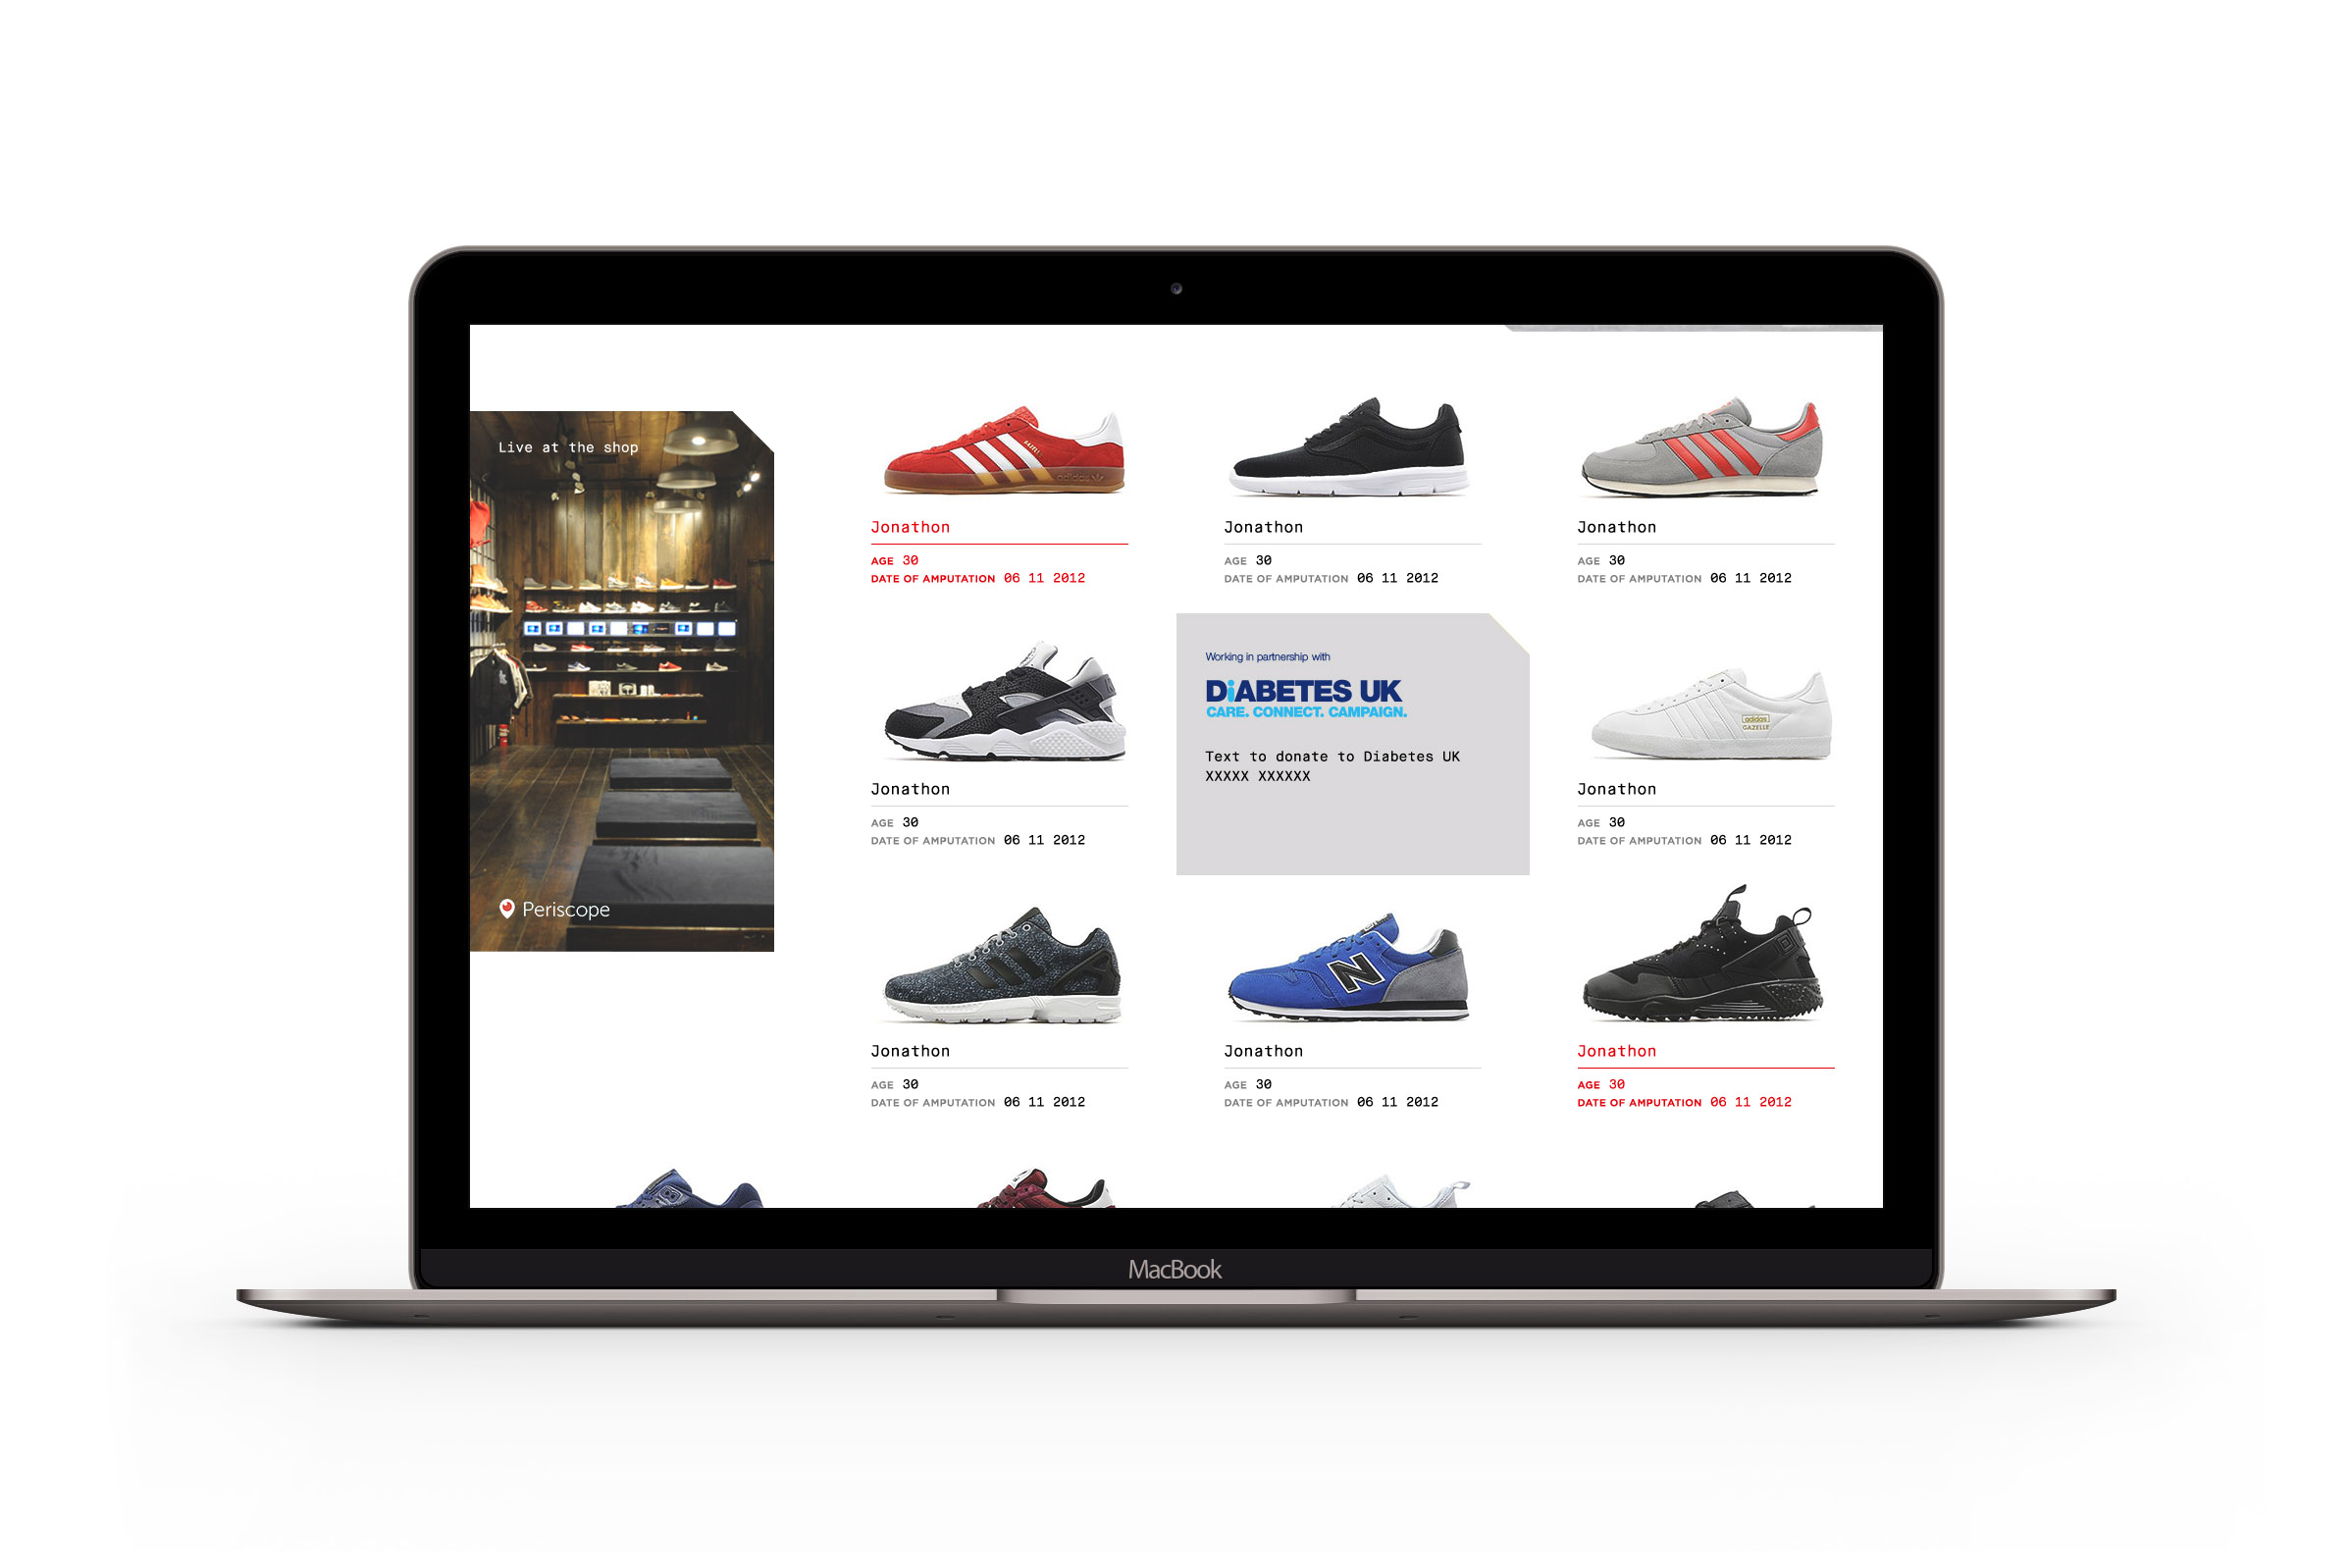 Posing as an online shoe store, a website featured photographs of shoes from amputees, and encouraged people to take their risk score.